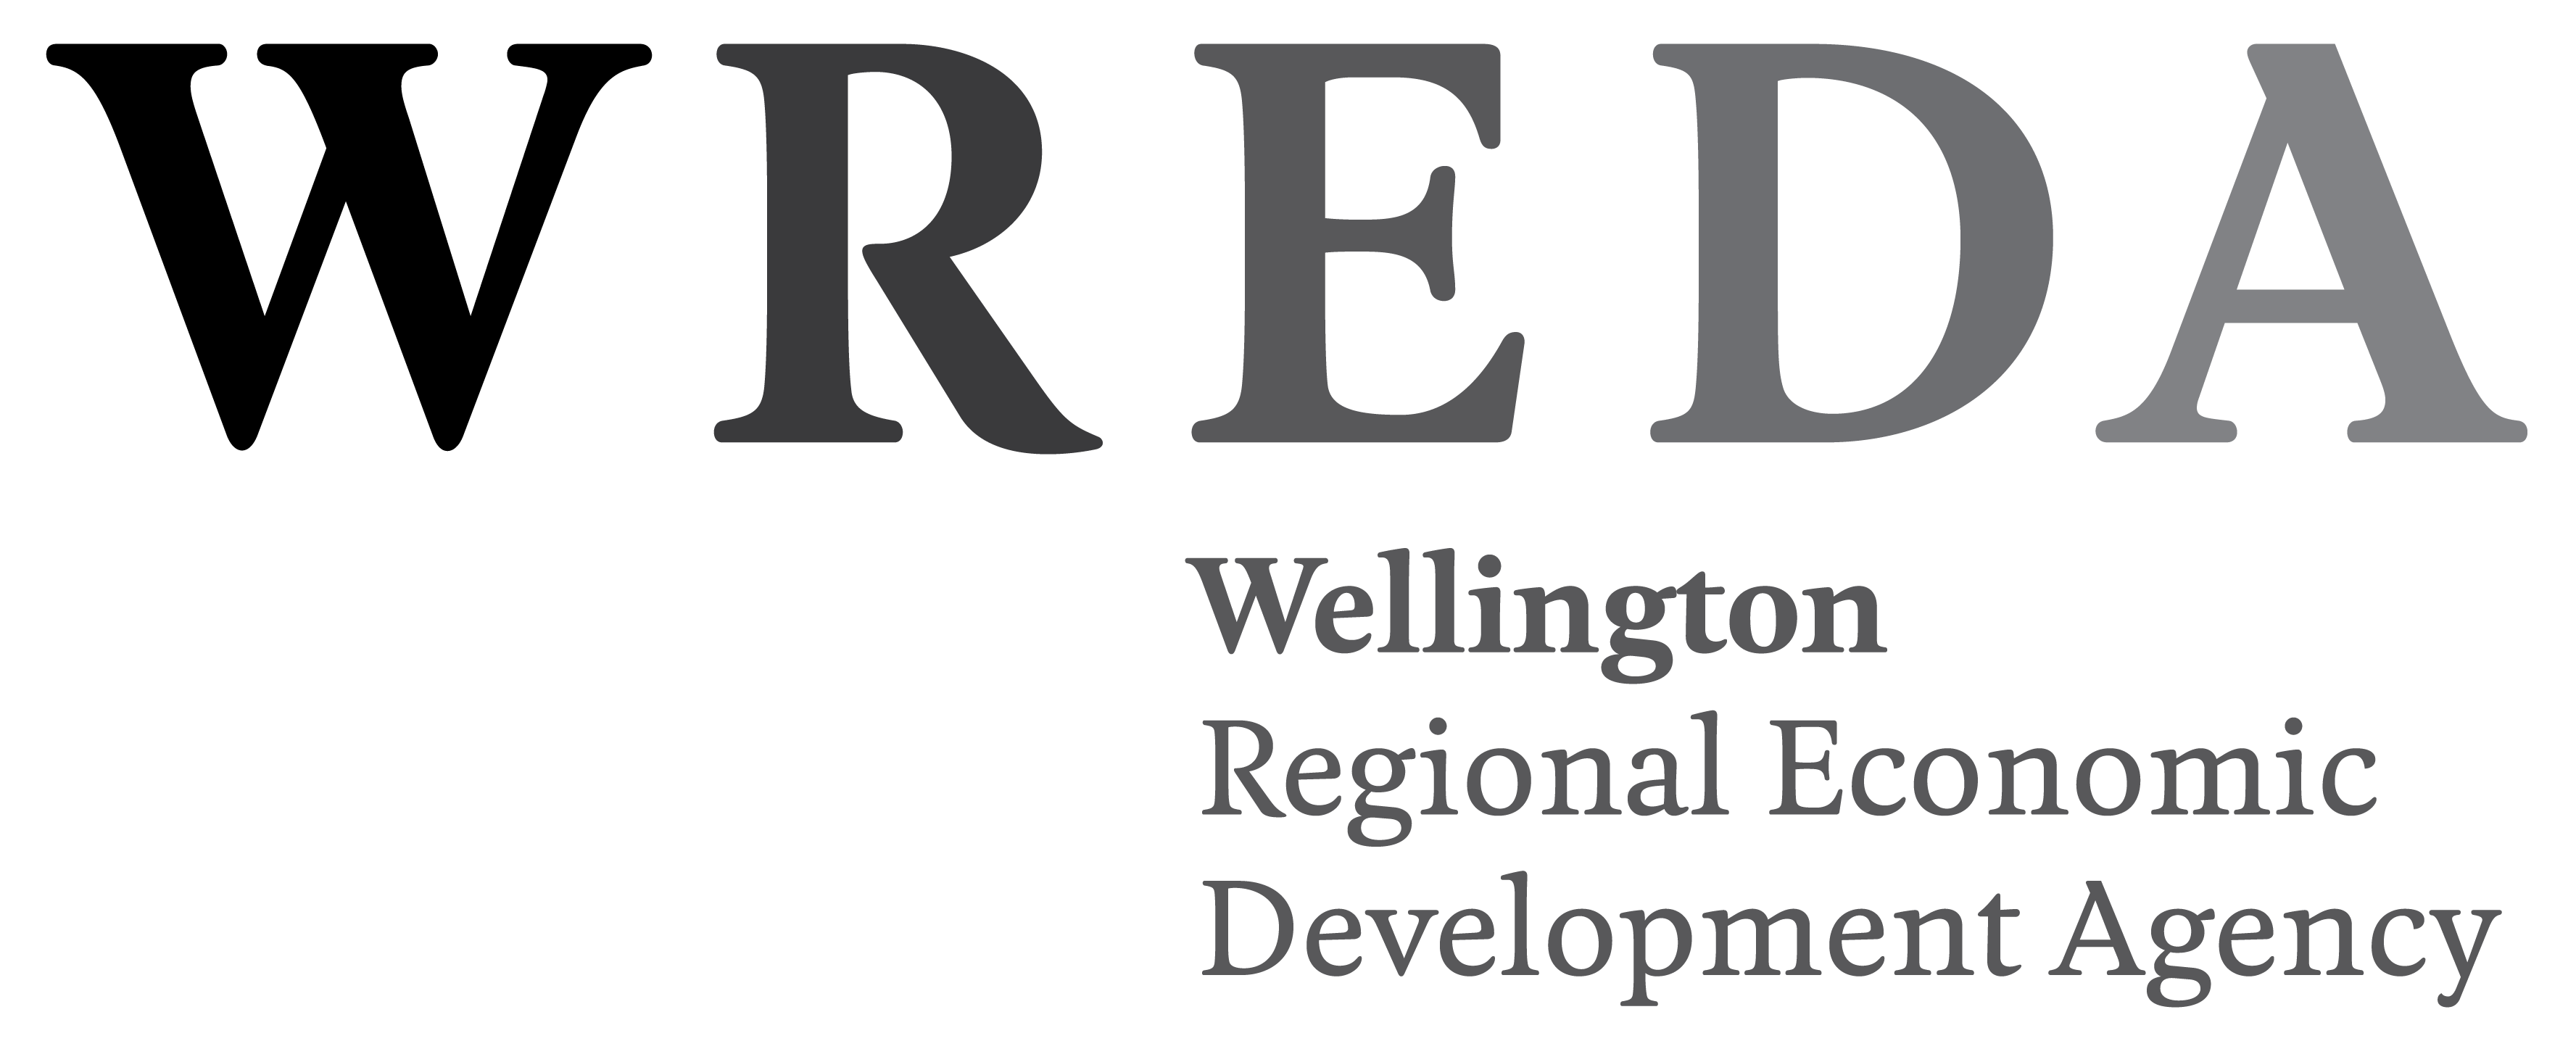 WREDA Wellington Regional Economic Development Agency